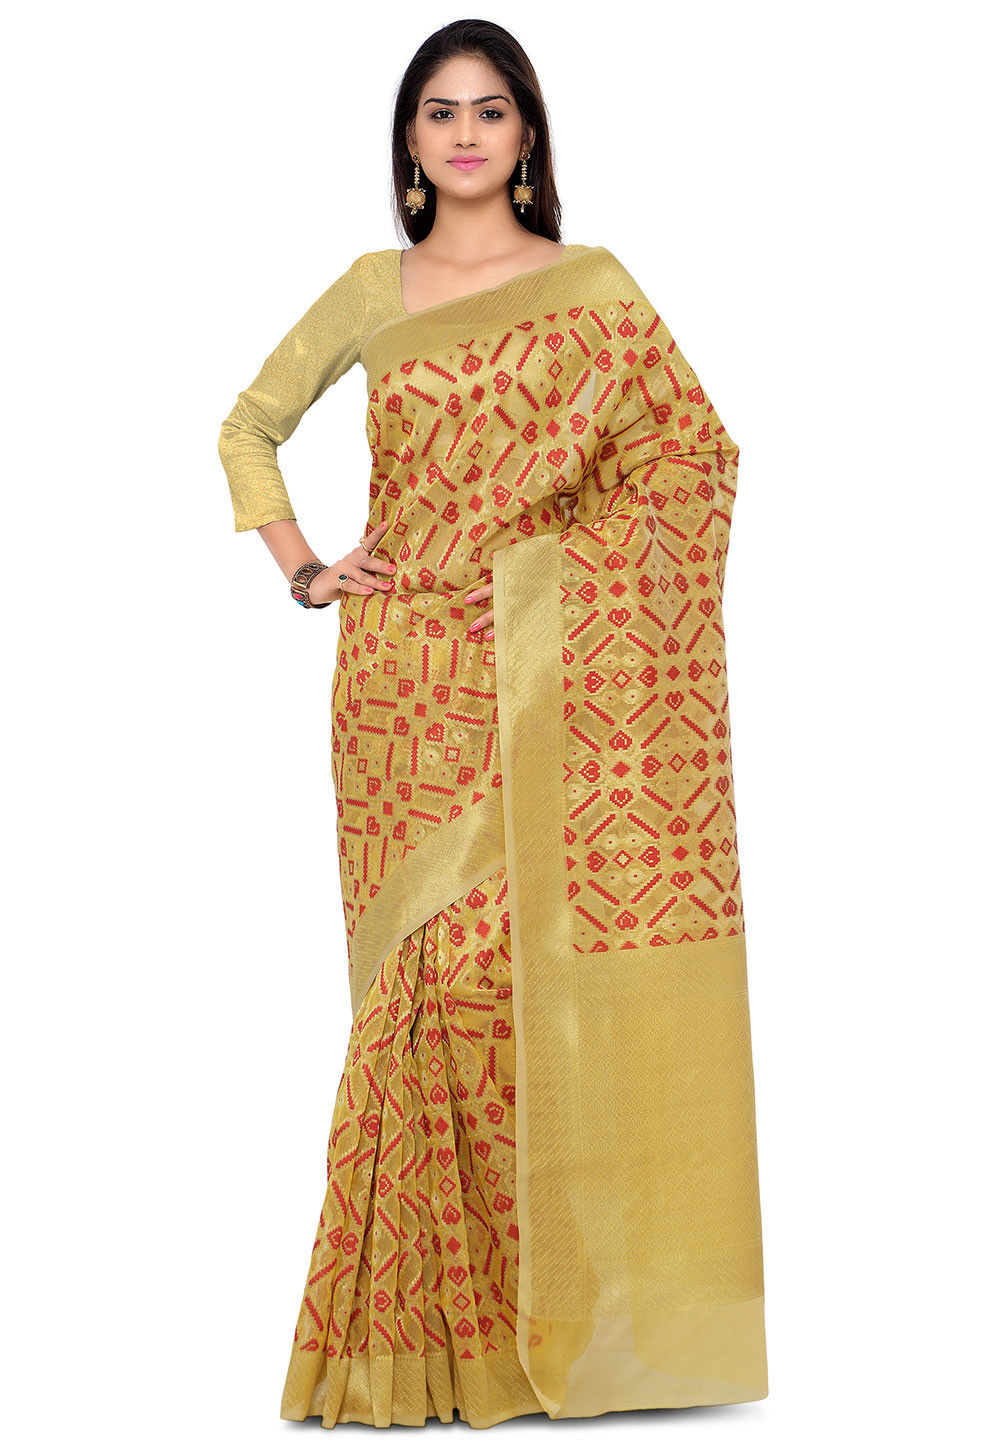 Woven Tissue Jacquard Saree in Golden